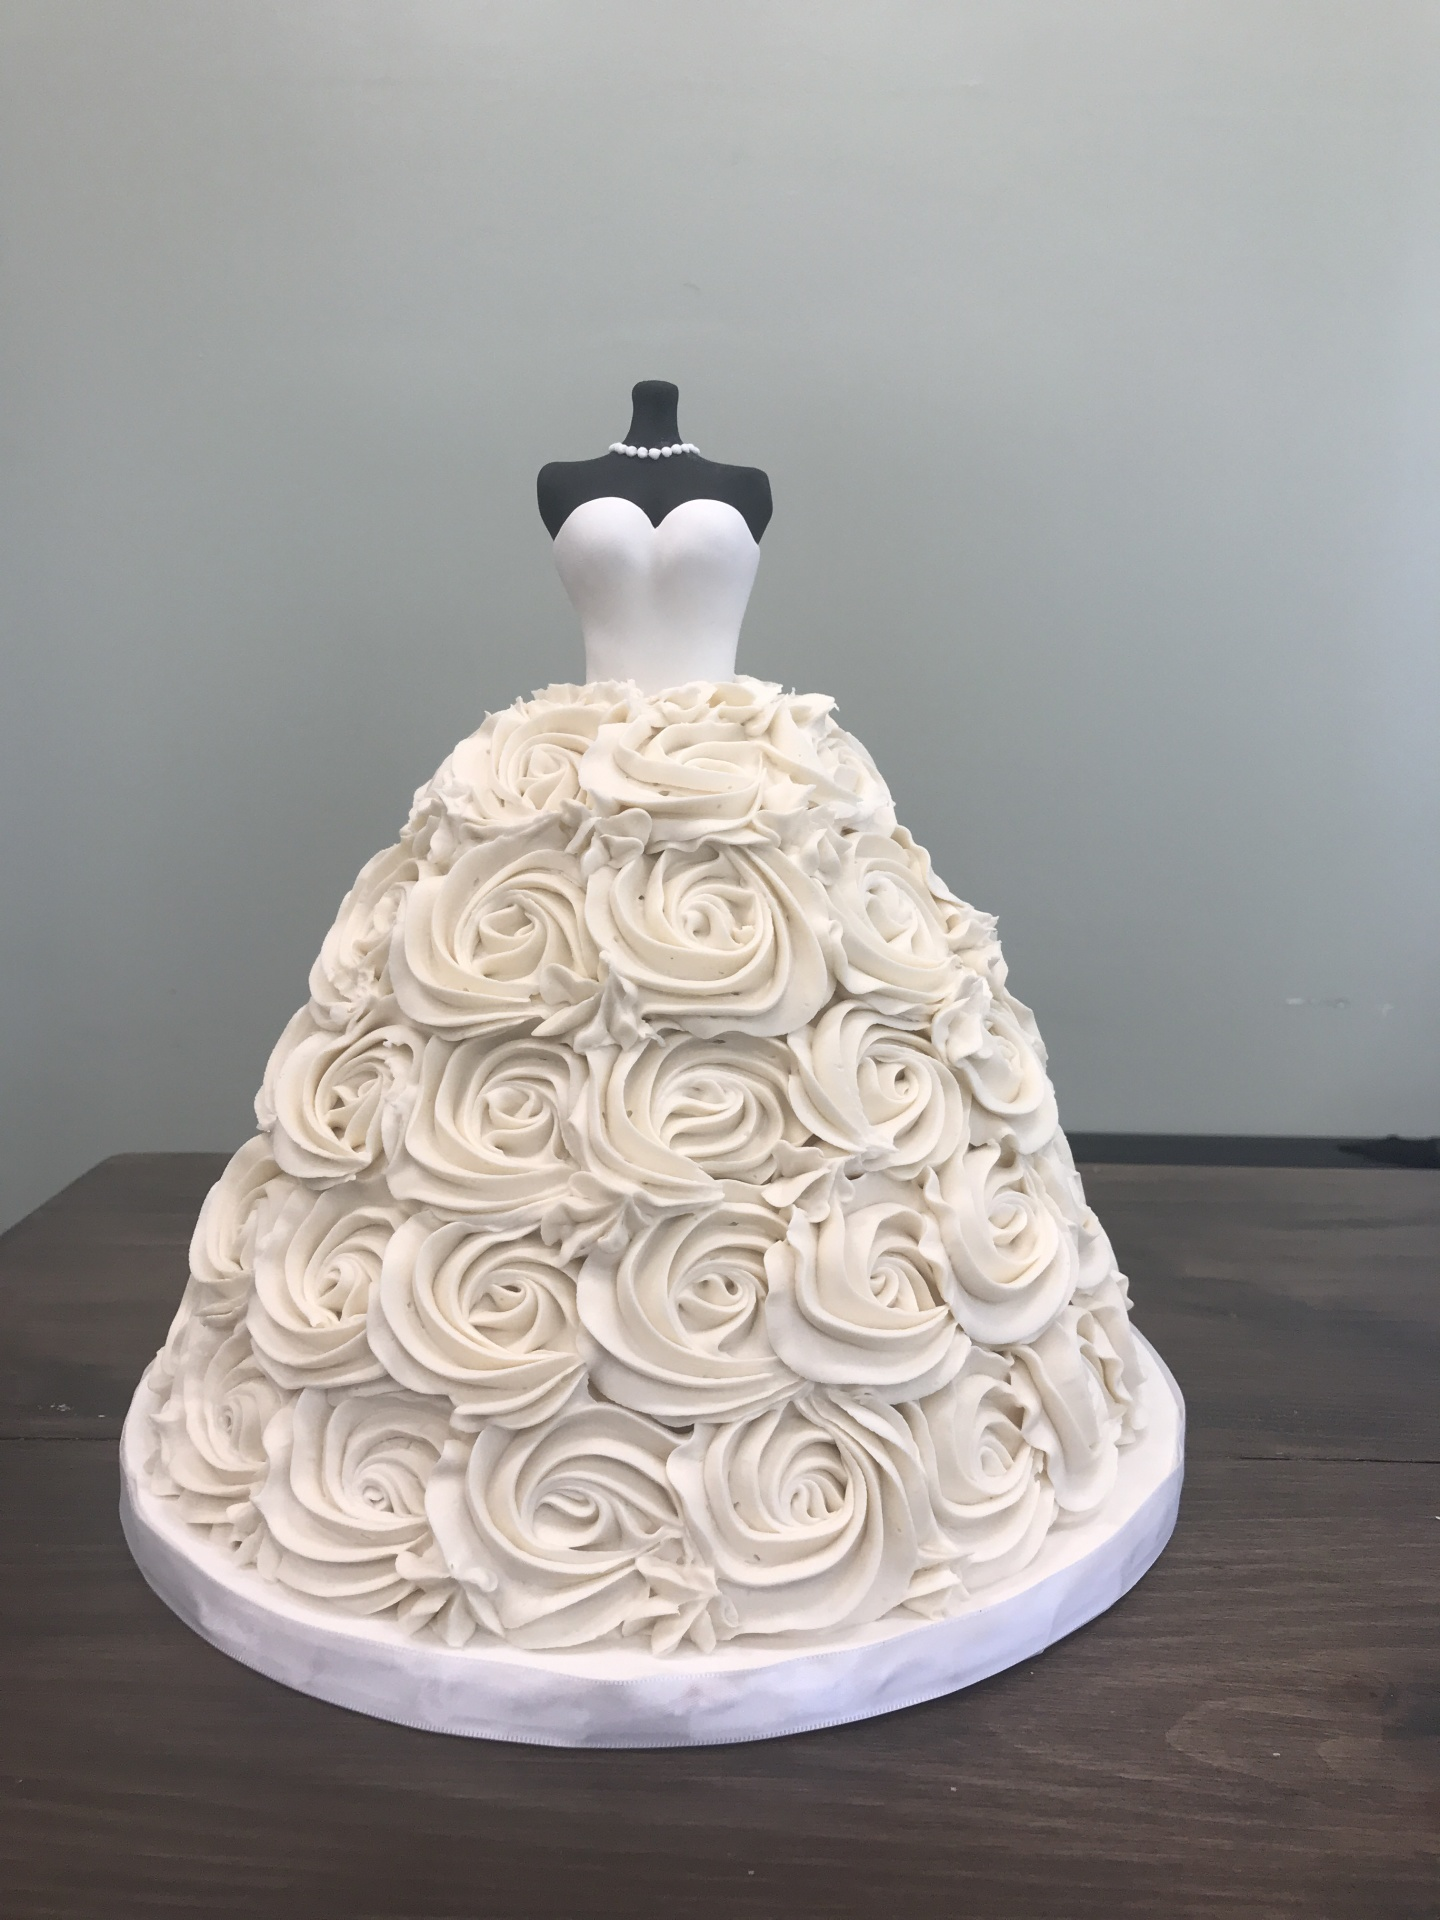 Custom Cakes NJ Dress cake with buttercream rosettes